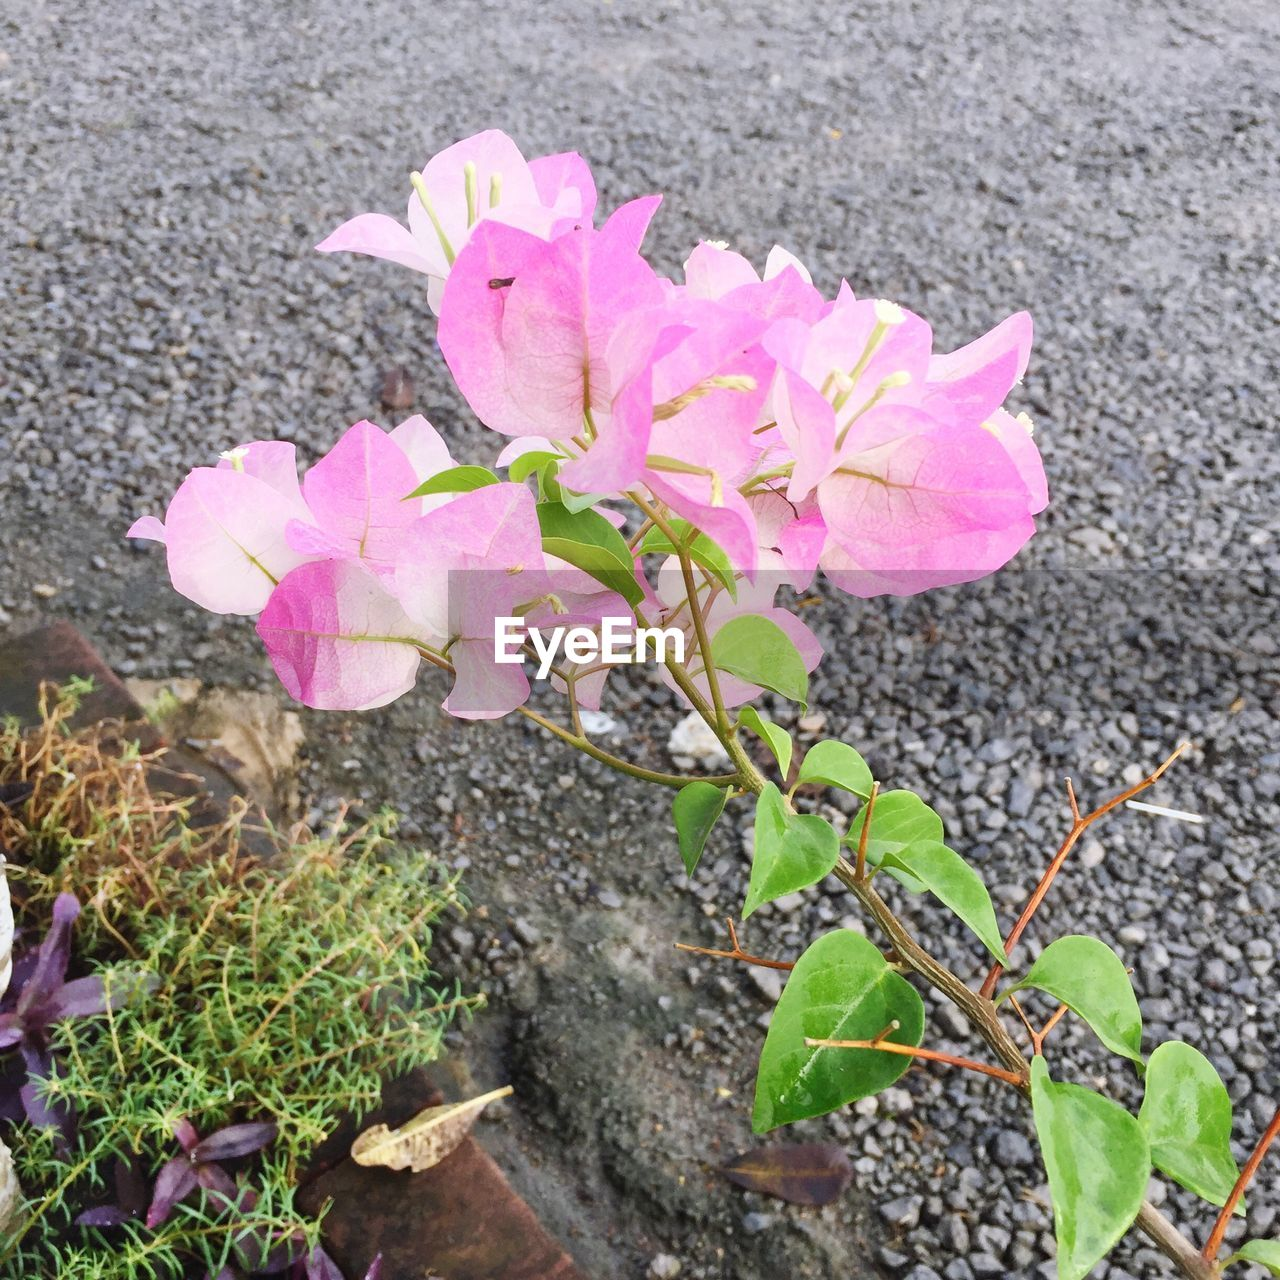 flower, growth, nature, plant, pink color, fragility, petal, high angle view, no people, outdoors, leaf, flower head, beauty in nature, freshness, day, blooming, road, close-up, springtime, periwinkle